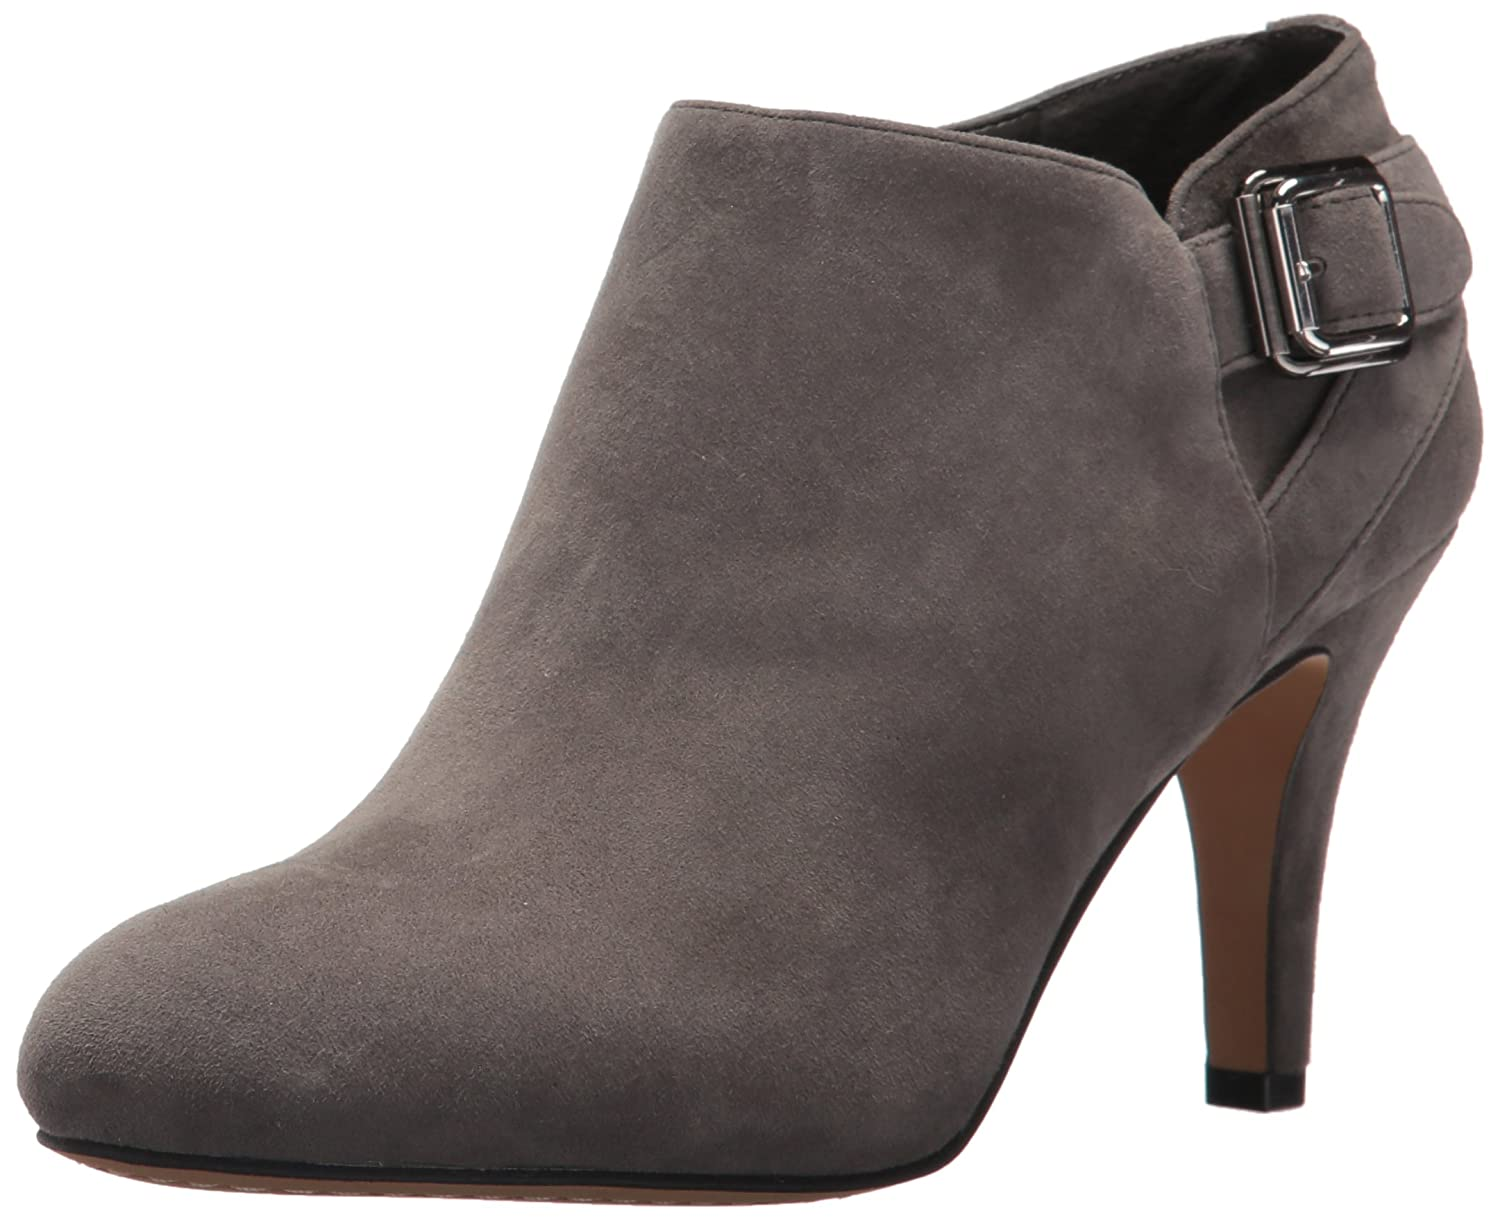 Vince Camuto Women's Vayda Ankle Boot B072FNNJDS 11 B(M) US|Gray Stone